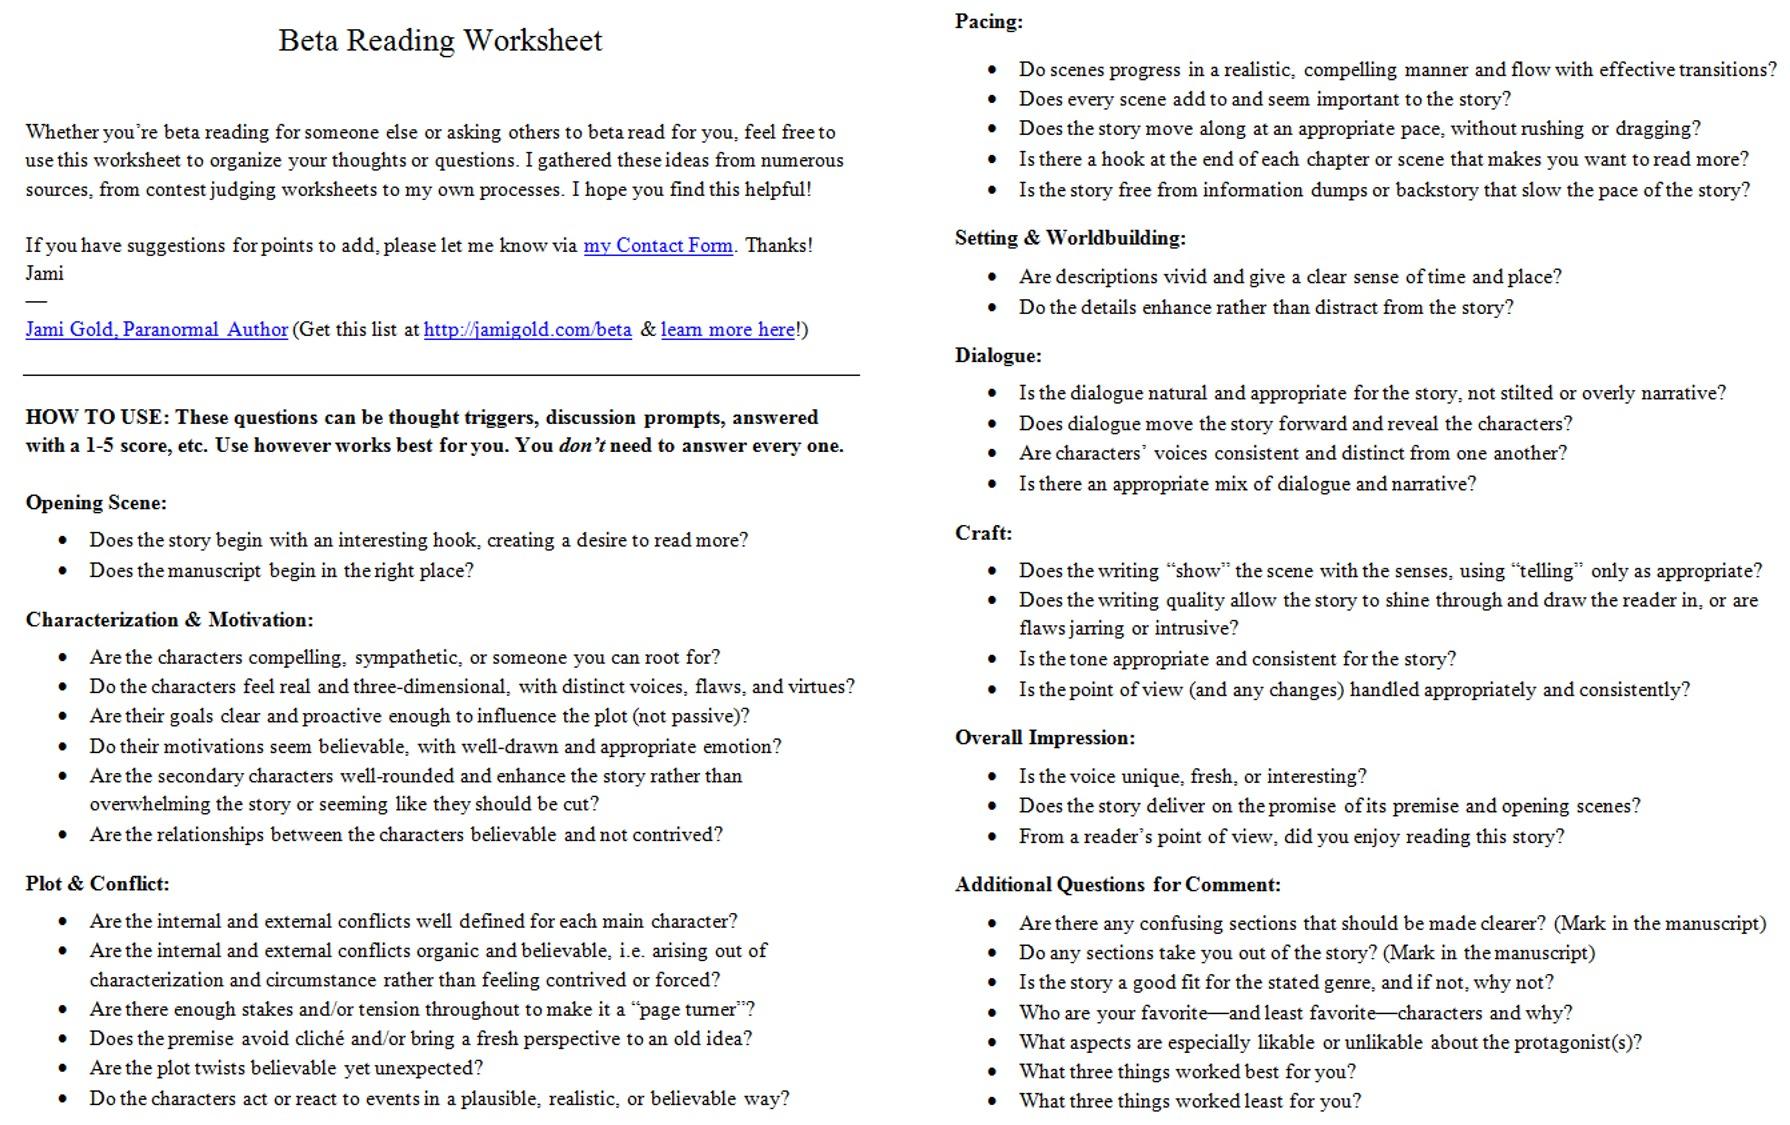 Weirdmailus  Unique Worksheets For Writers  Jami Gold Paranormal Author With Great Screen Shot Of The Twopage Beta Reading Worksheet With Astonishing Molecular Geometry Worksheet With Answers Also Reading A Ruler Worksheet In Addition Multiplying And Dividing Fractions Worksheet And Regrouping Subtraction Worksheets As Well As Number  Worksheets Additionally Balancing Reactions Worksheet From Jamigoldcom With Weirdmailus  Great Worksheets For Writers  Jami Gold Paranormal Author With Astonishing Screen Shot Of The Twopage Beta Reading Worksheet And Unique Molecular Geometry Worksheet With Answers Also Reading A Ruler Worksheet In Addition Multiplying And Dividing Fractions Worksheet From Jamigoldcom